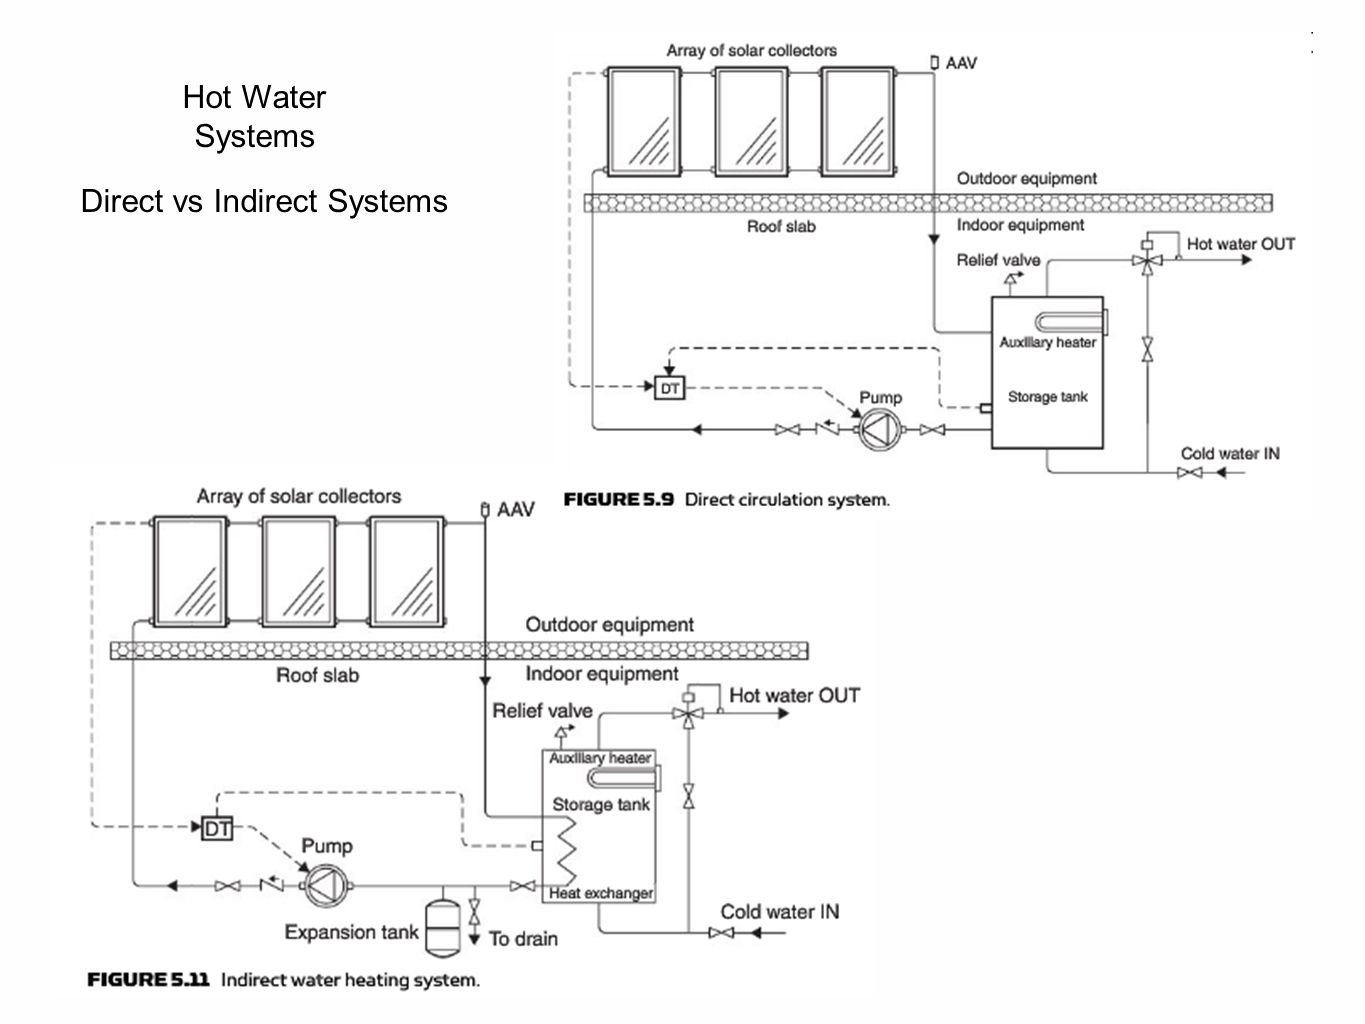 Direct vs Indirect Systems Hot Water Systems